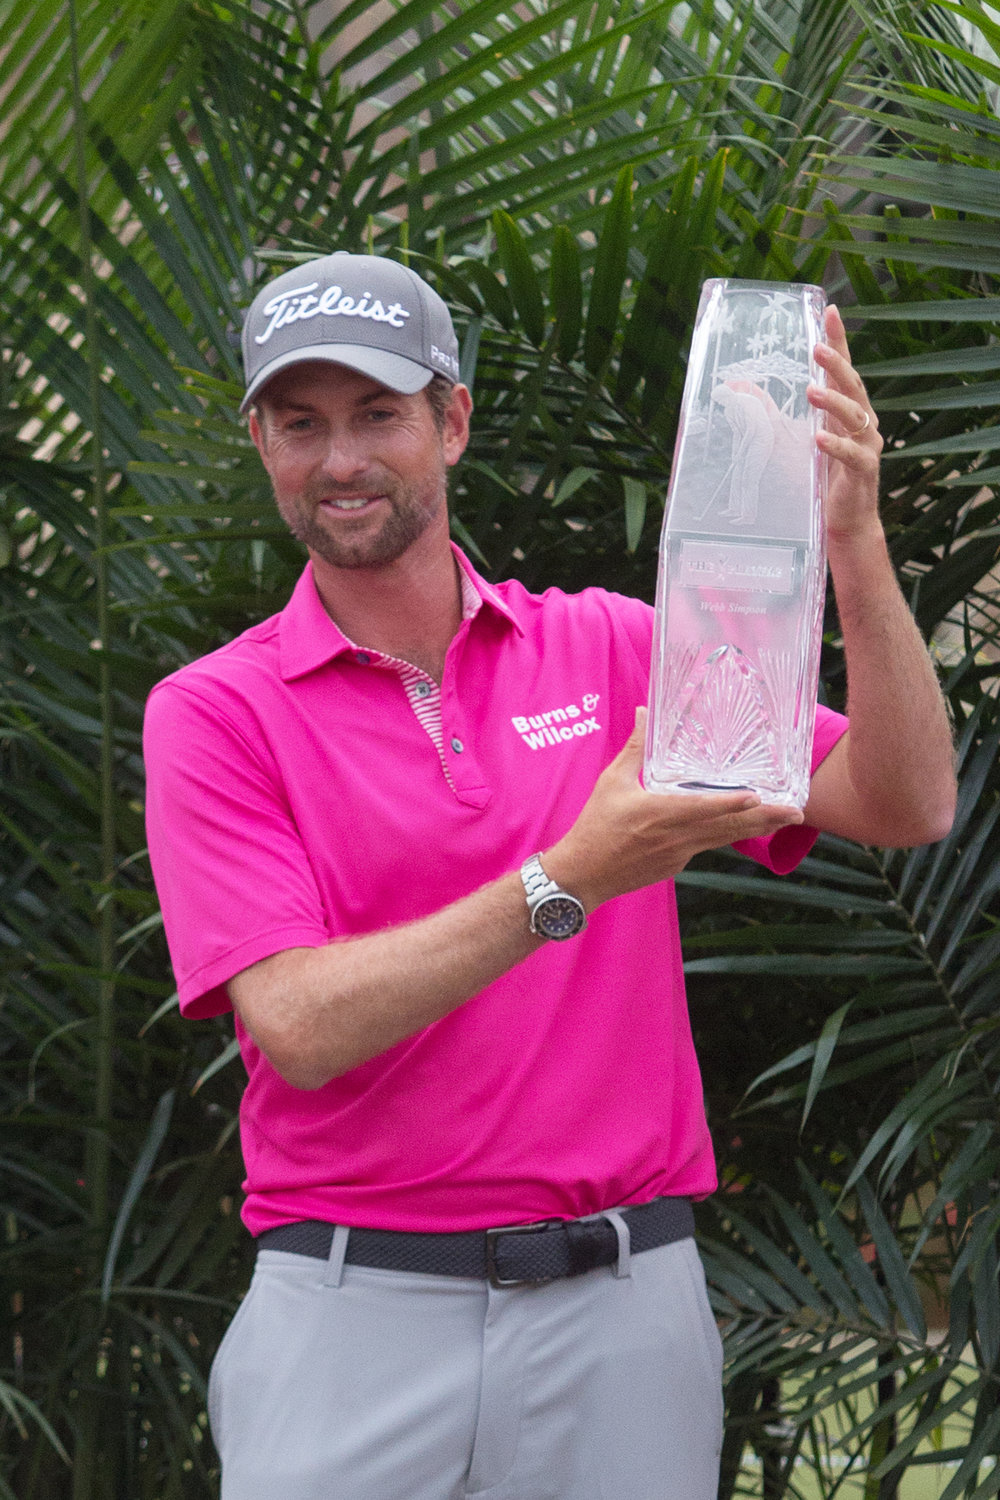 THE PLAYERS 2018 winner Webb Simpson displays the trophy.